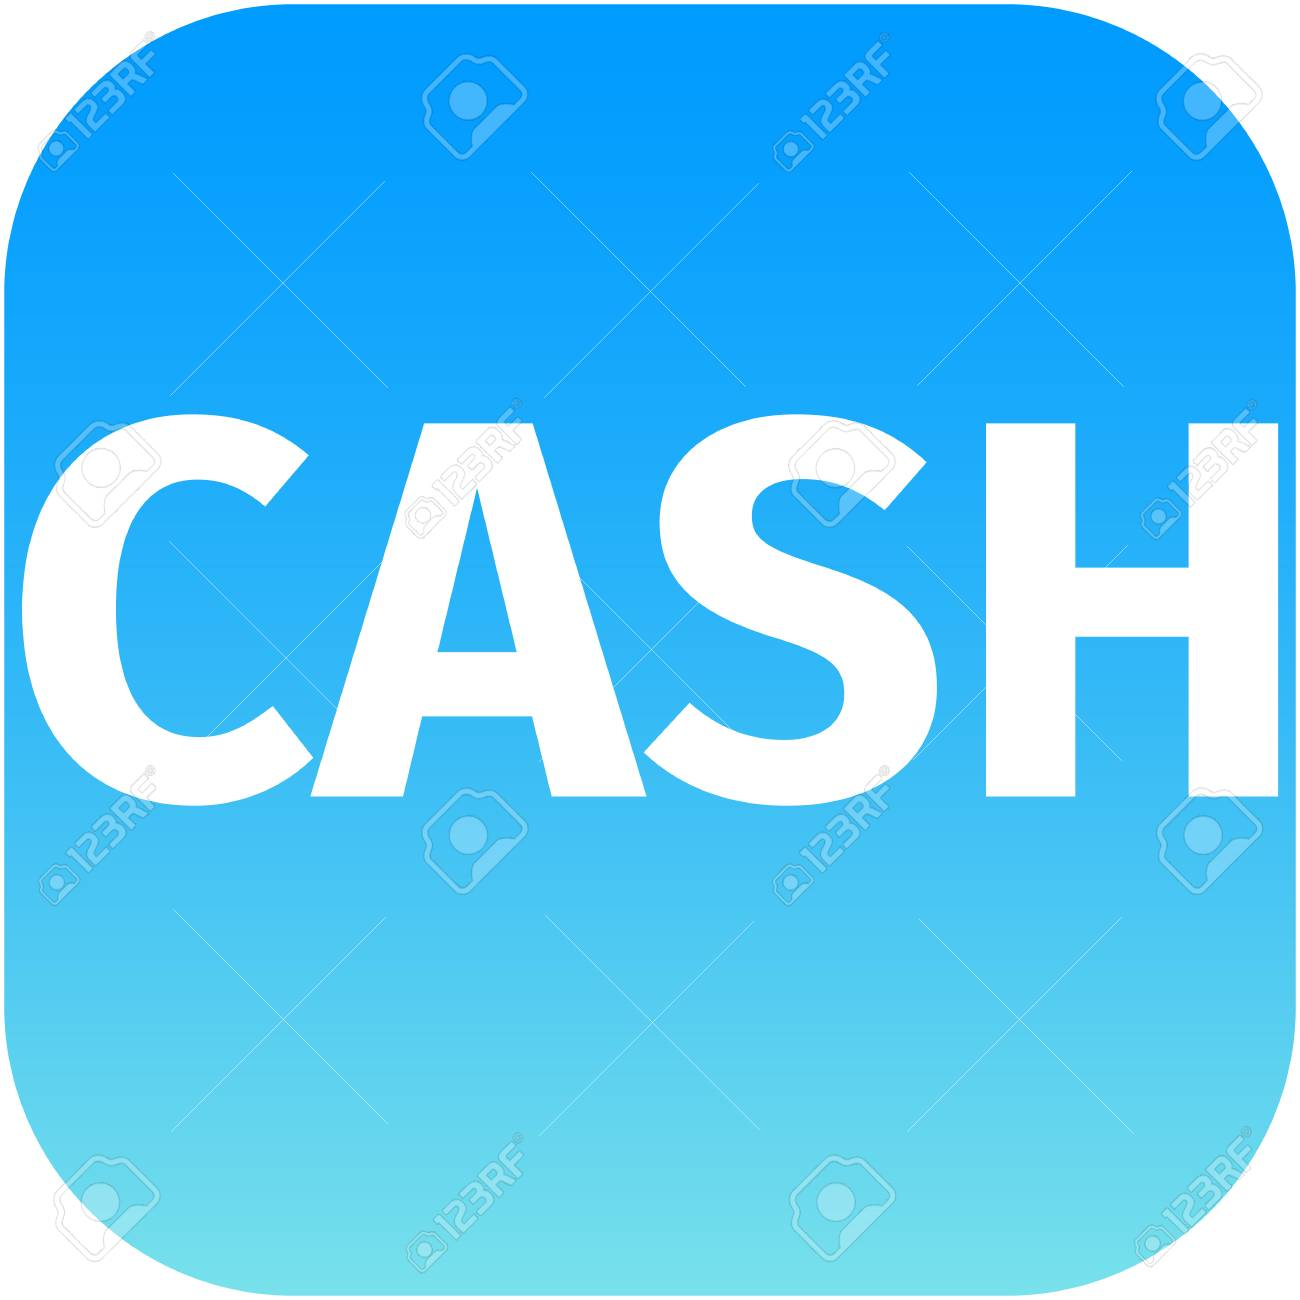 Blue Cash Icon For Web Or Phone App Stock Photo Picture And Royalty Free Image Image 29769668